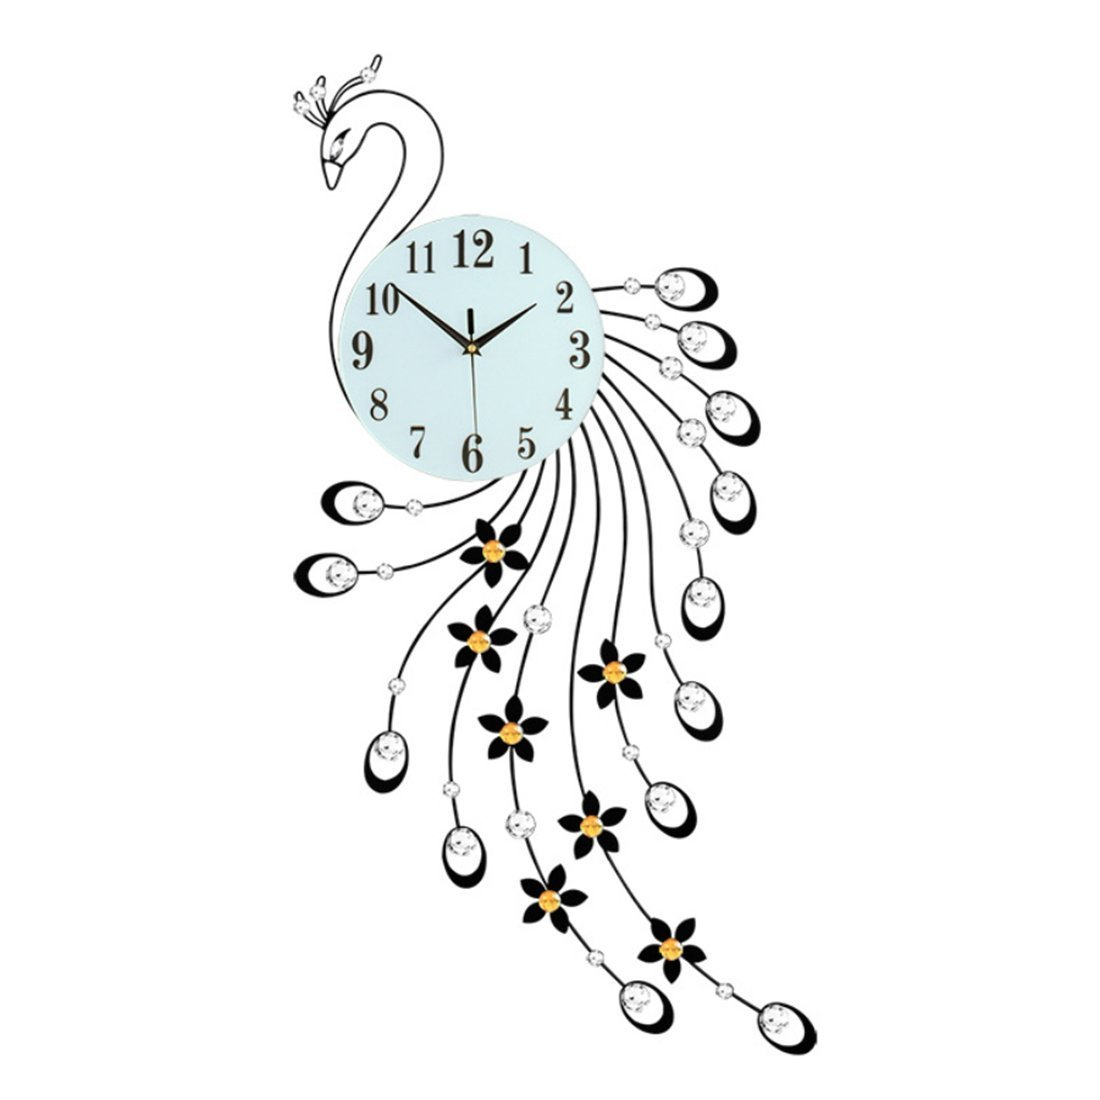 "Magshion 3D Large Peacock Crystals Design Iron Wall Clock W/ Wall Hooks 38.2""L 16.9""W"